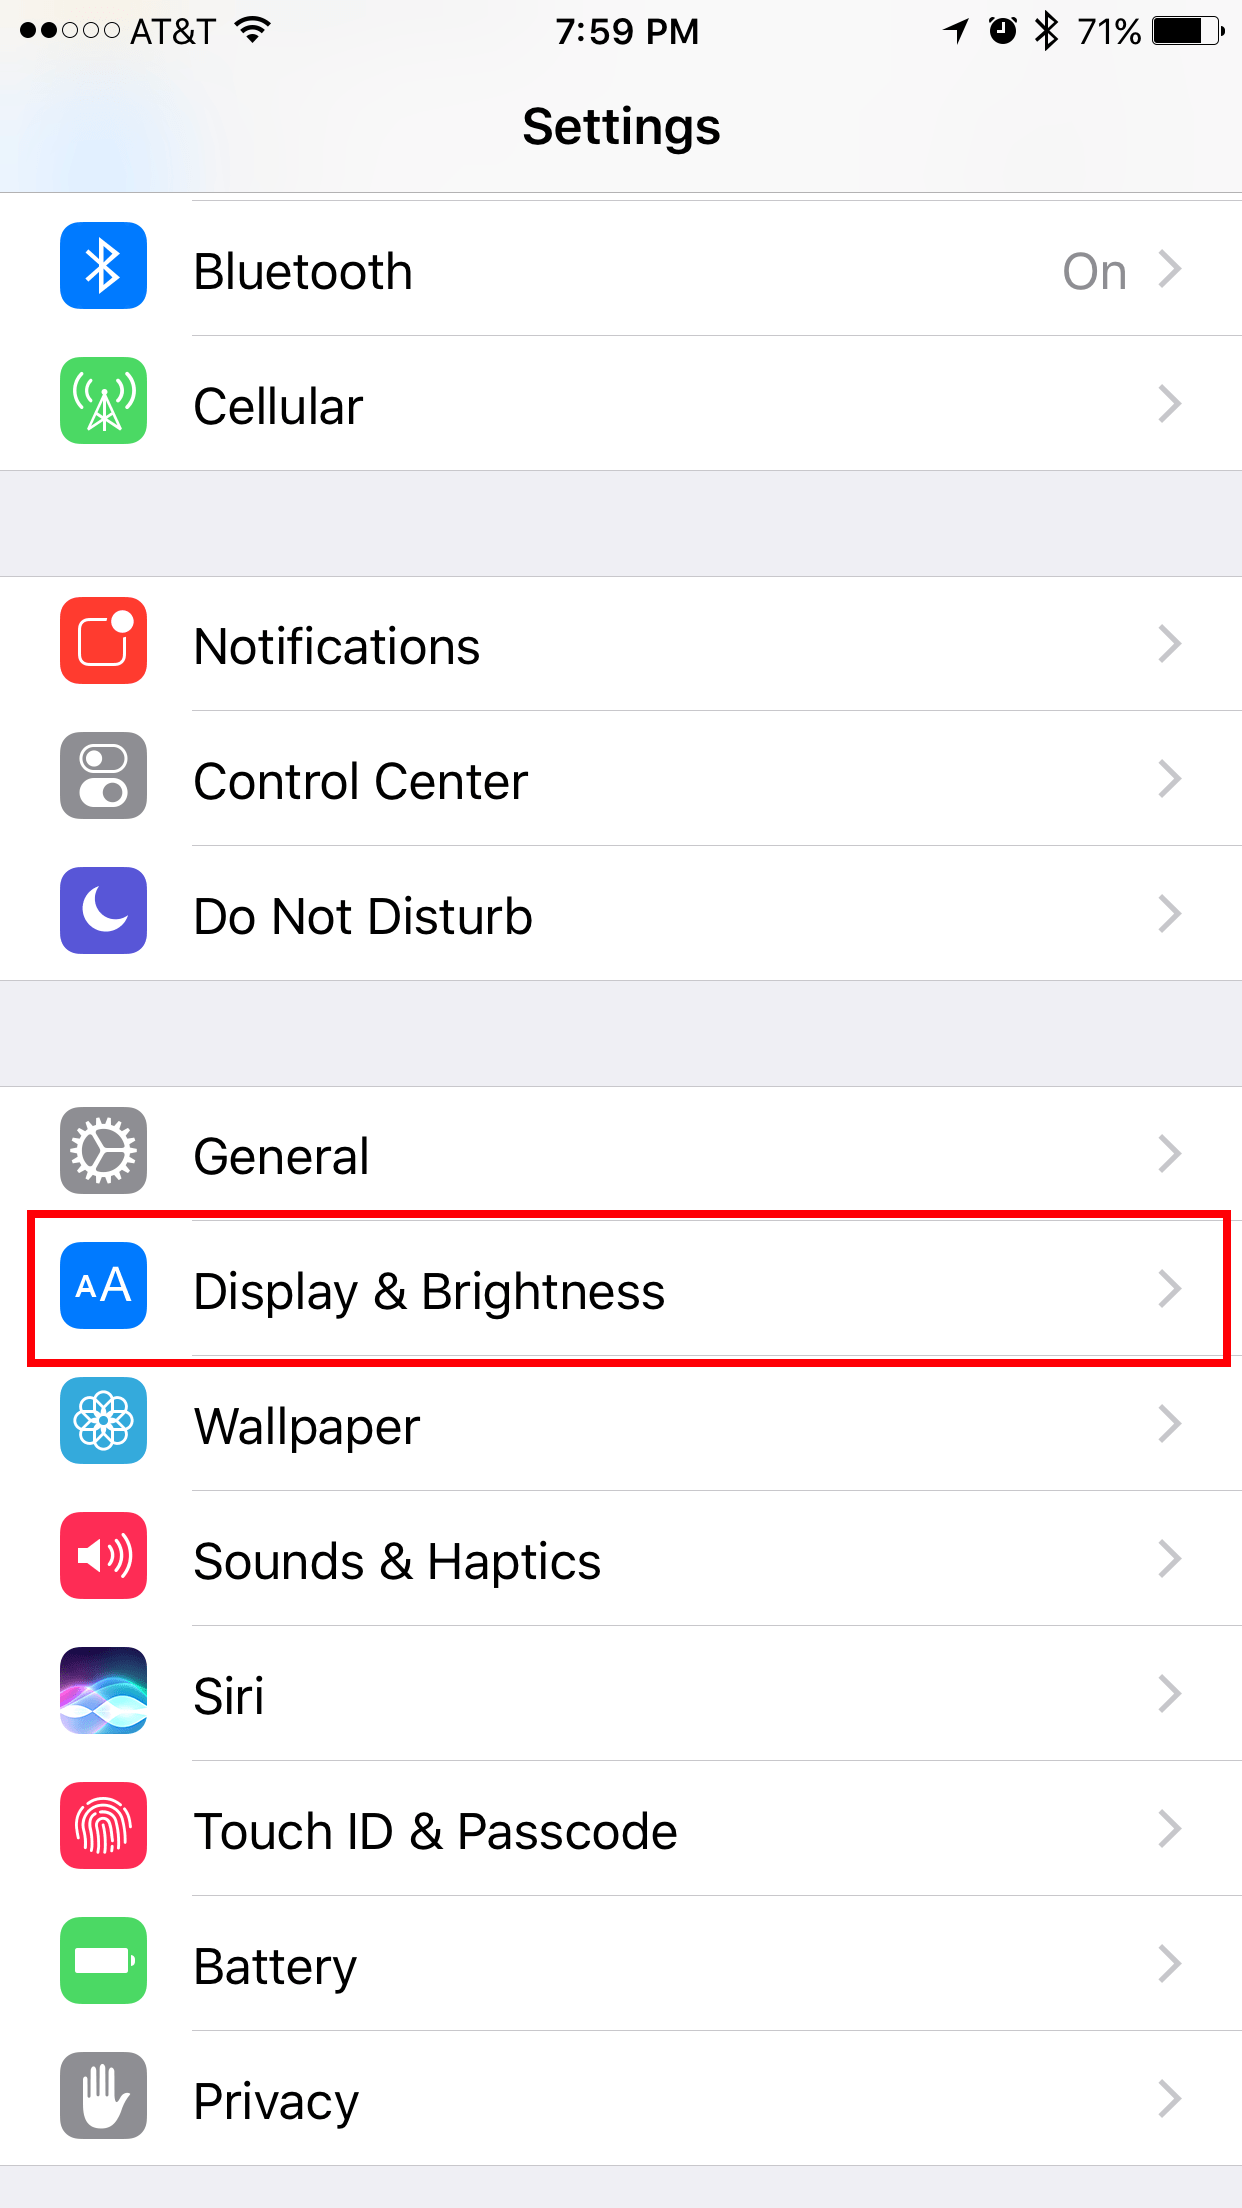 Display & Brightness